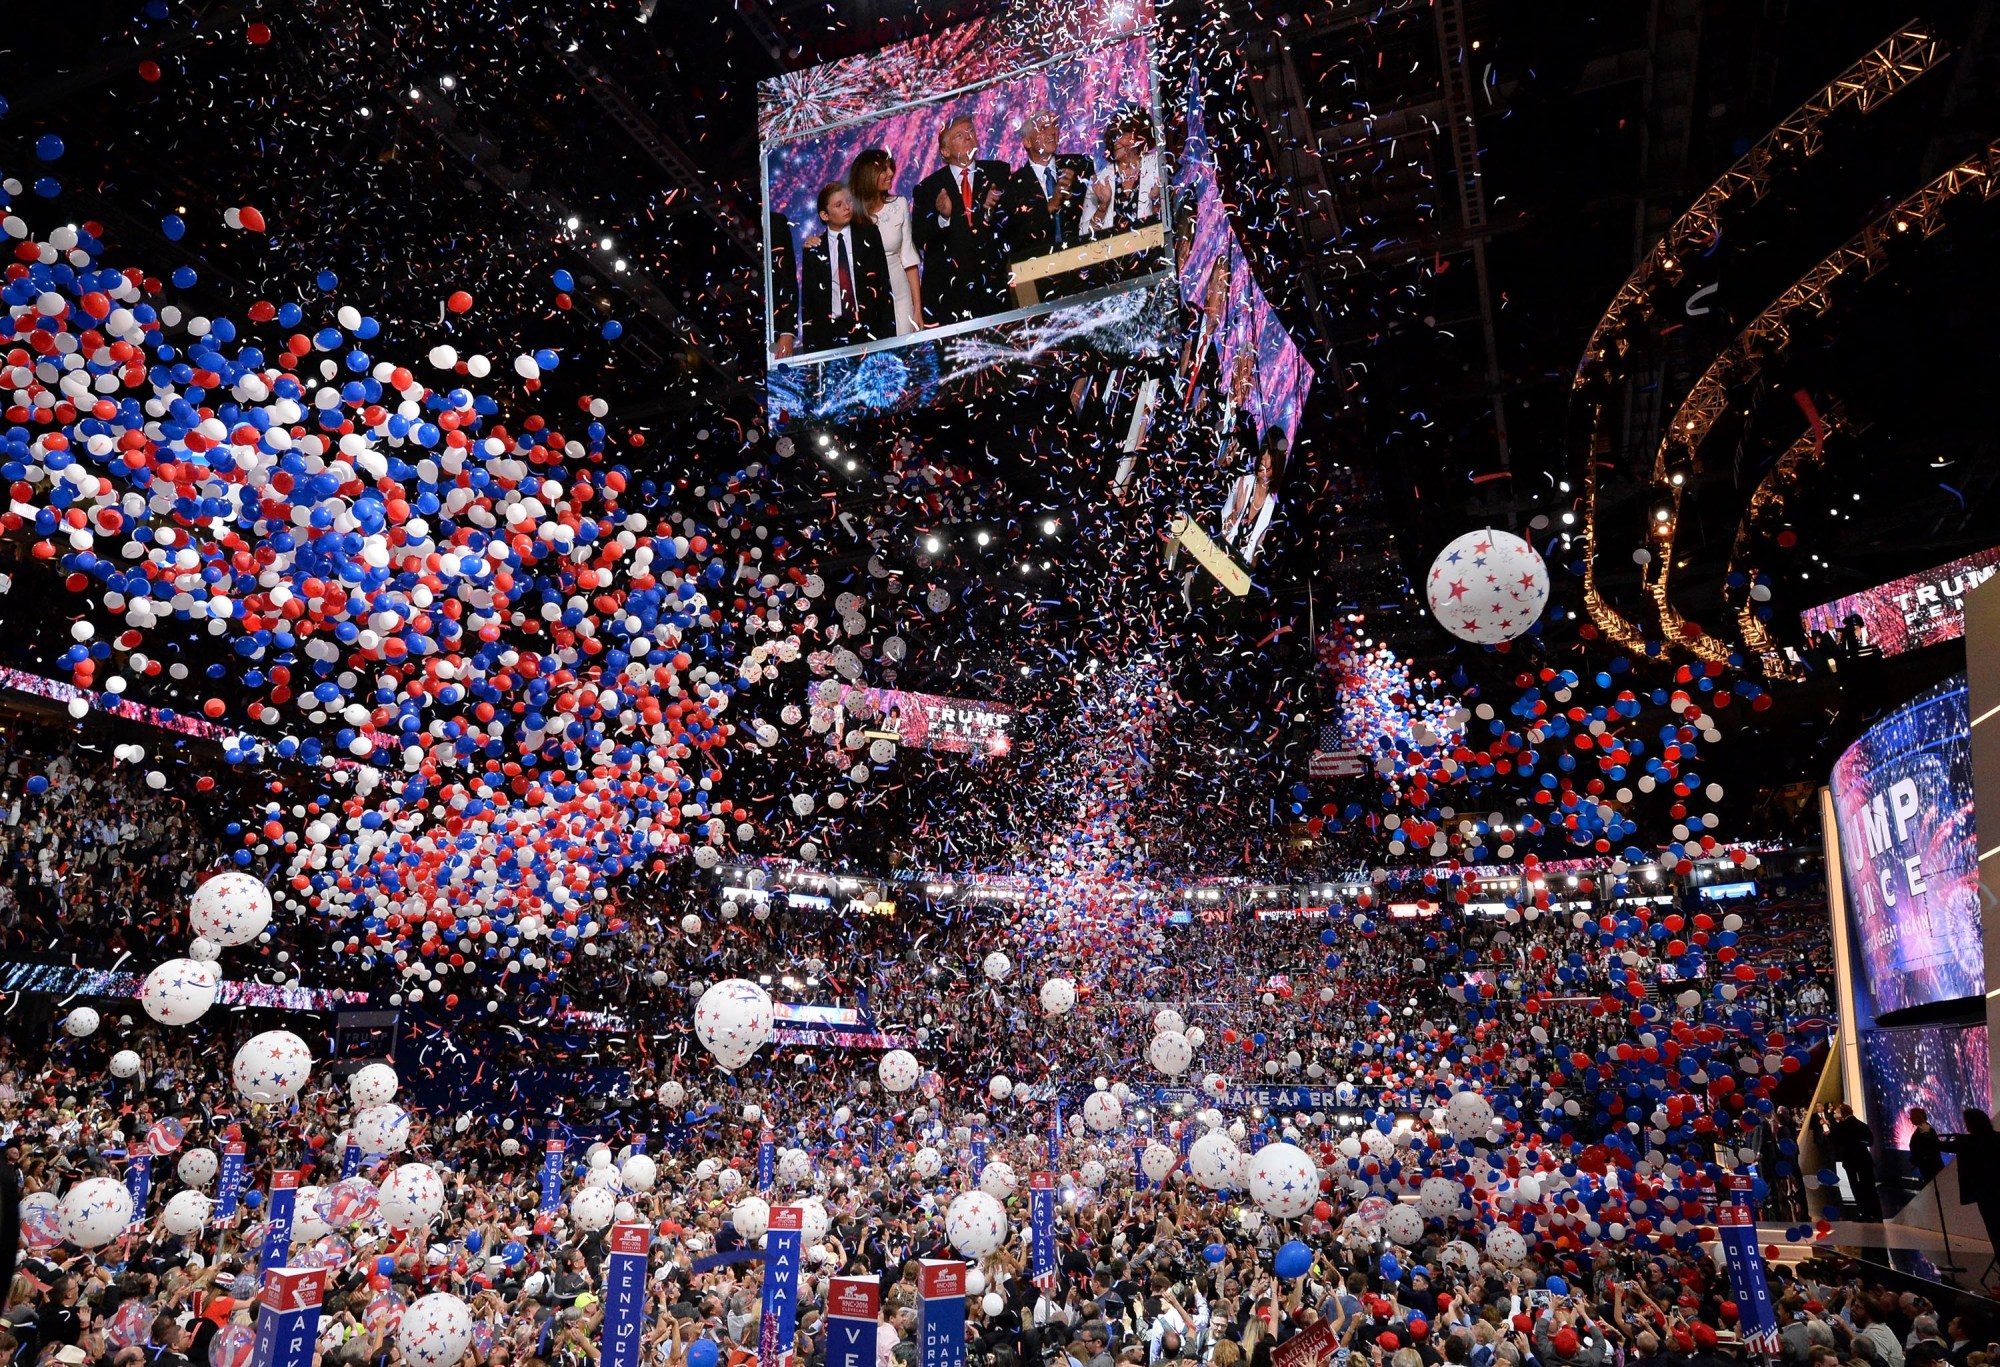 Balloons fall over the crowd as Donald Trump accepts the Republican Party's nomination as presidential candidate, at the end of the Republican National Convention on July 21, 2016. (ROBYN BECK/AFP/Getty Images)